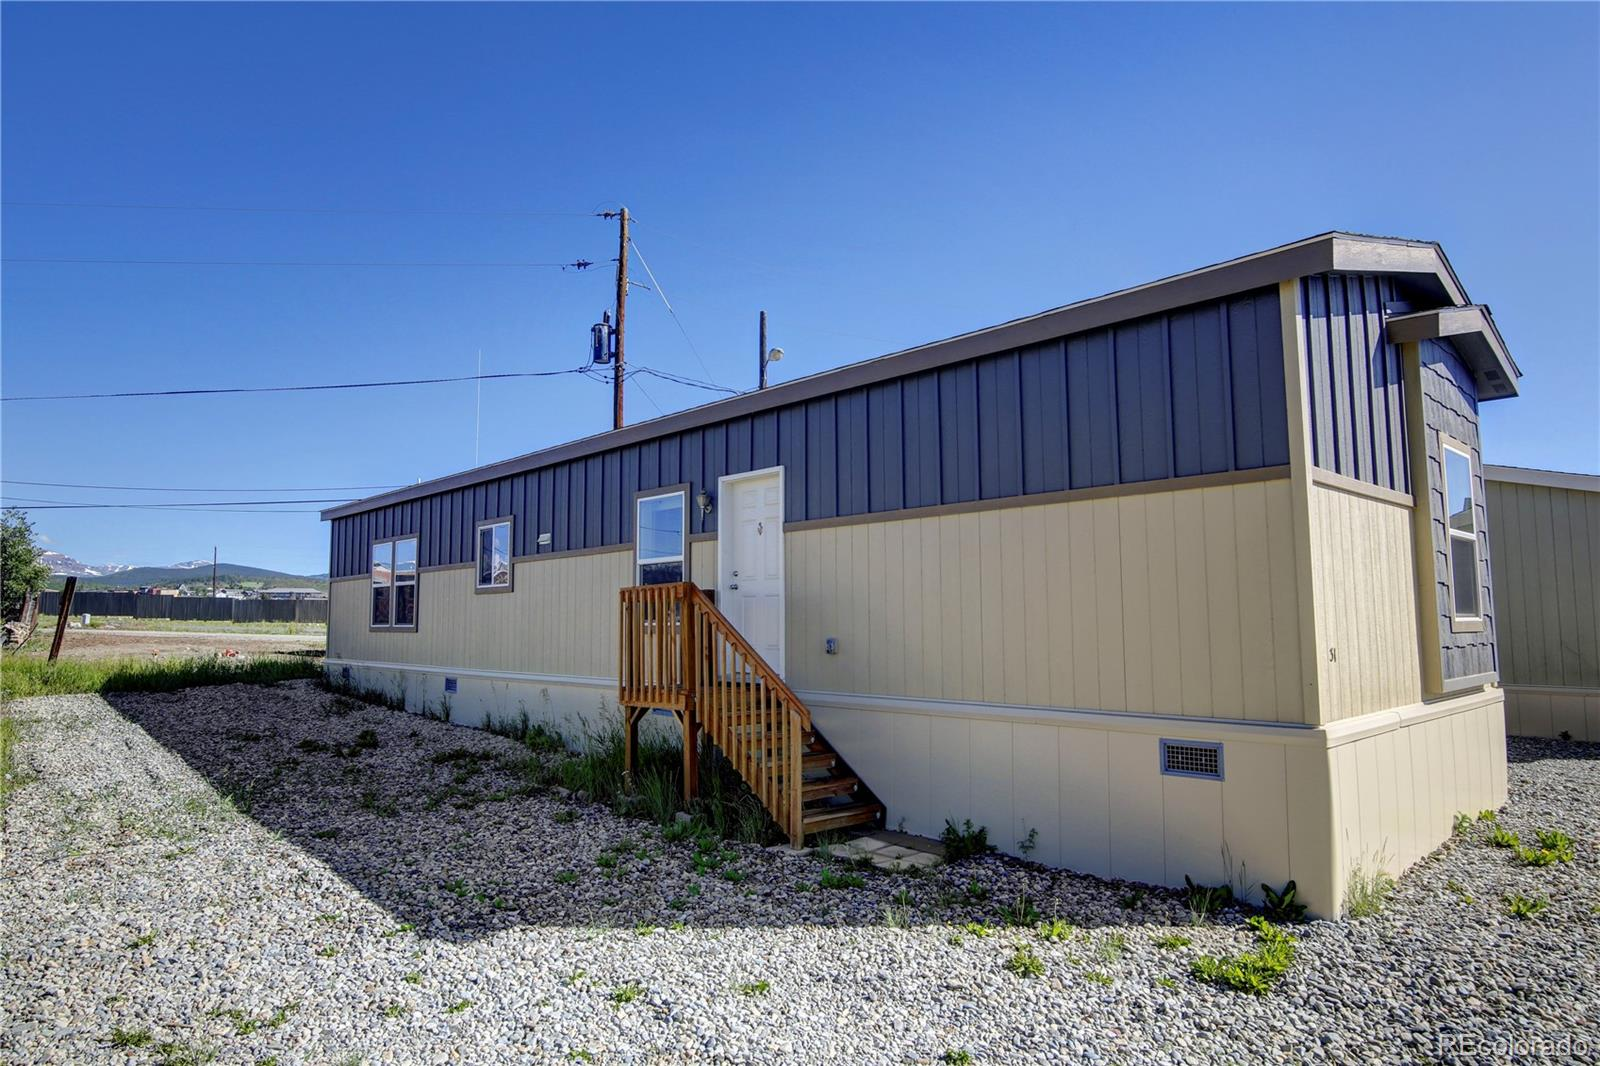 21980 US Highway 285, Fairplay, CO 80440 - Fairplay, CO real estate listing